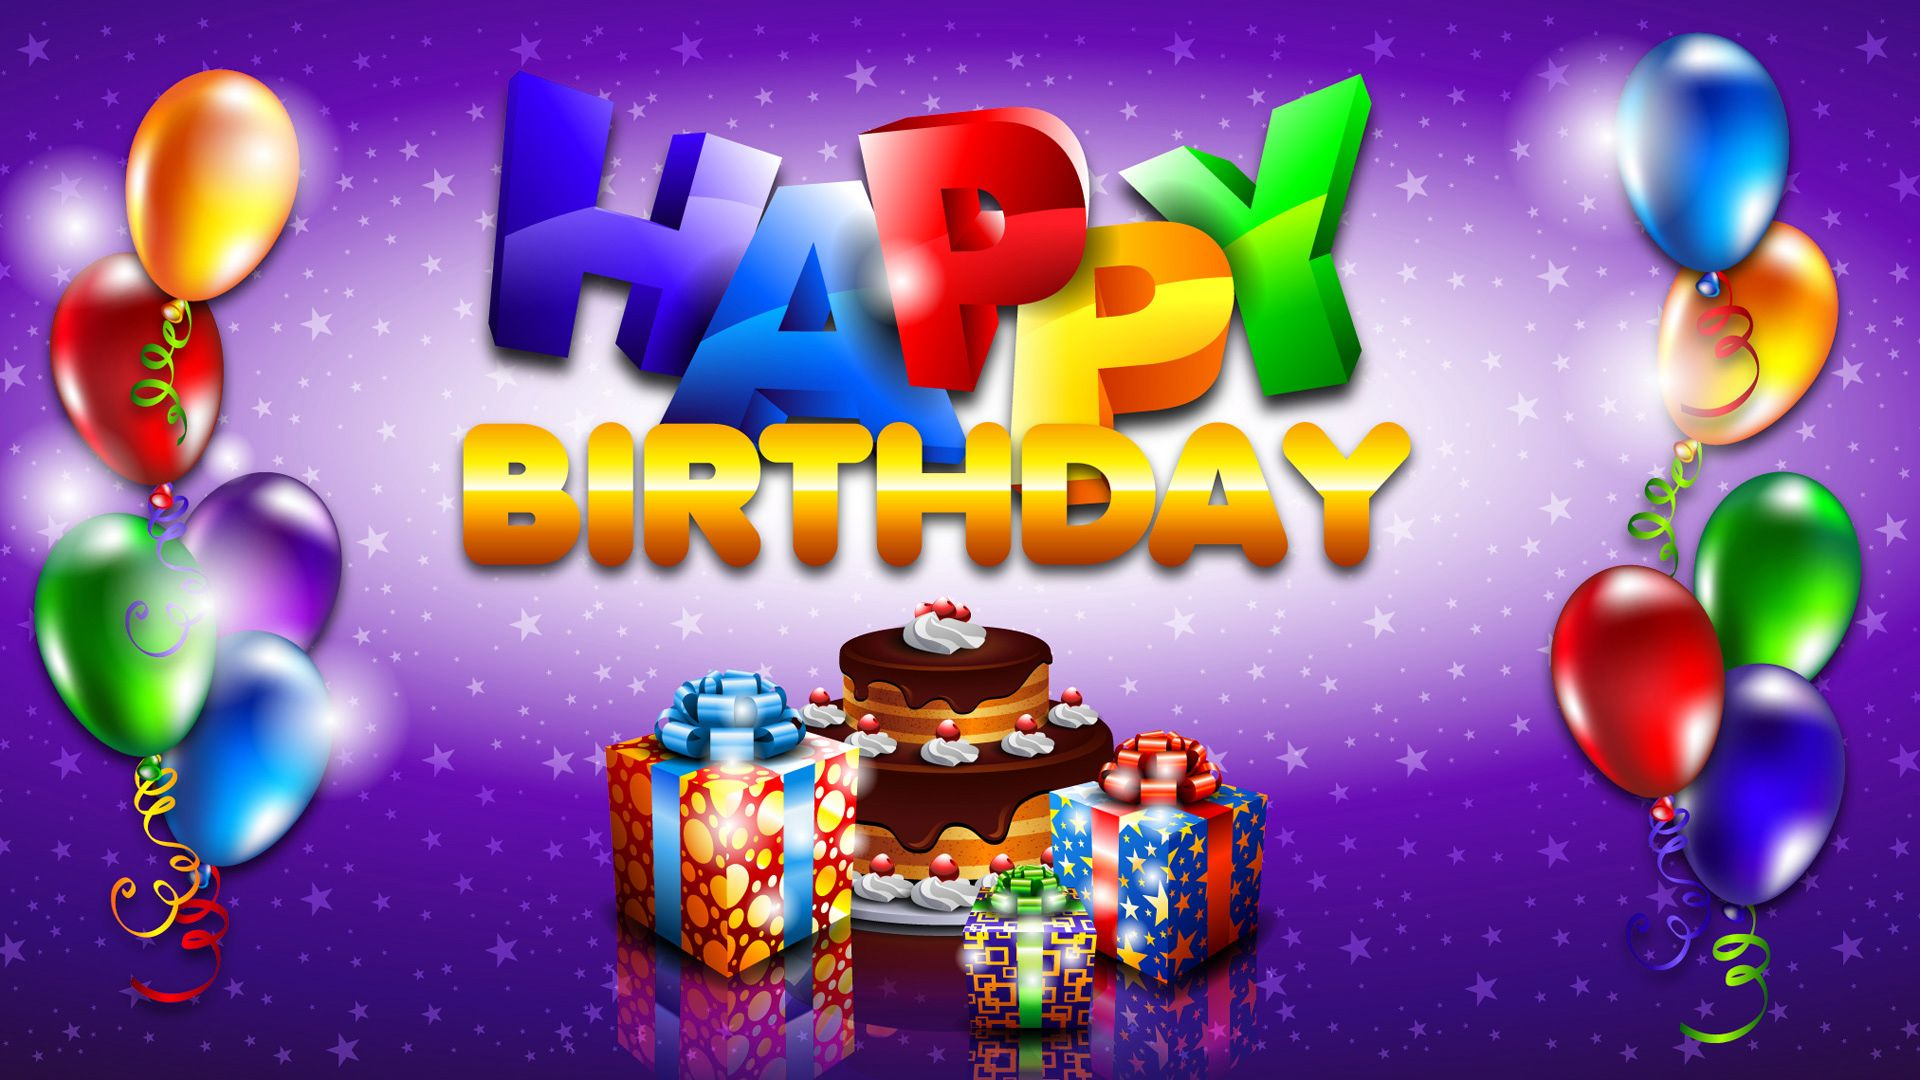 Happy Birthday Hd 3d - Google Search